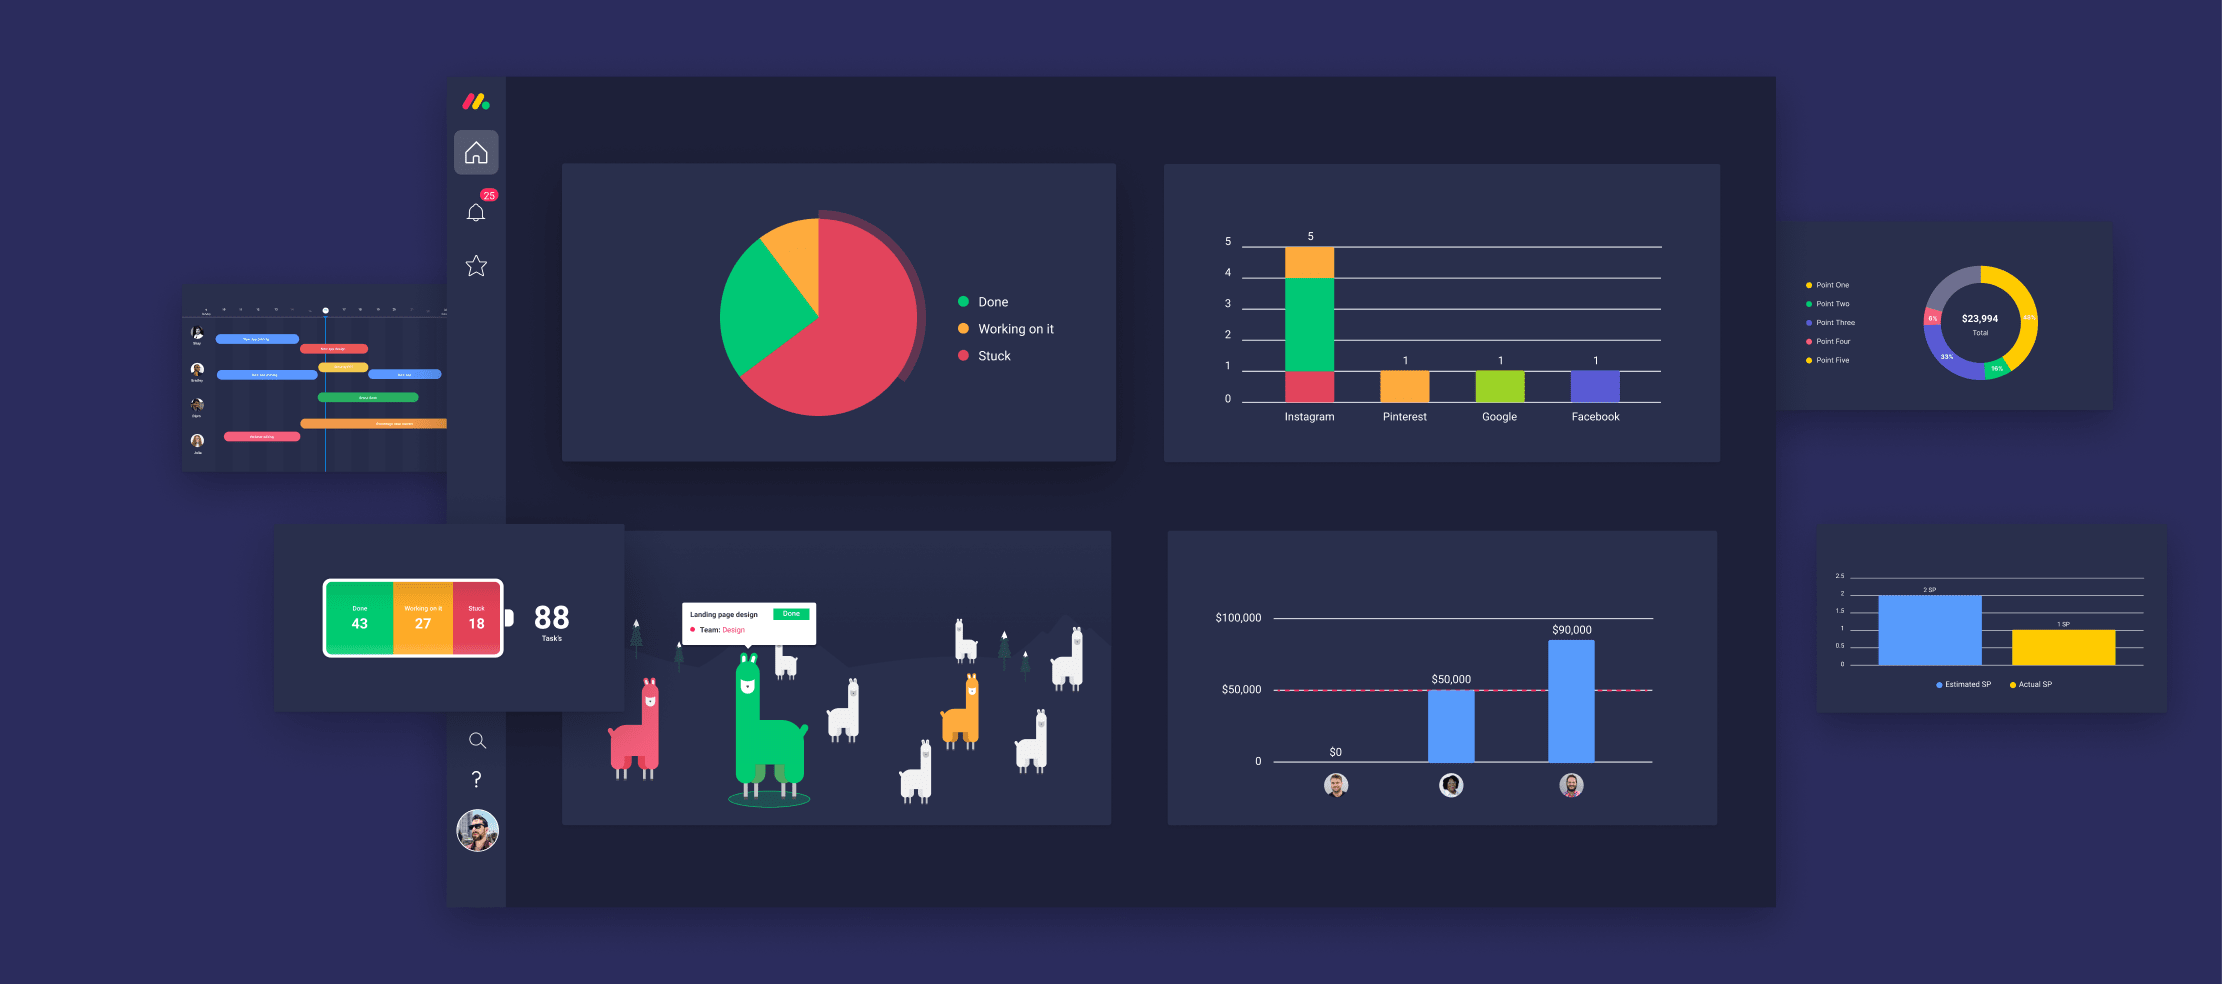 Large dashboard with various widgets